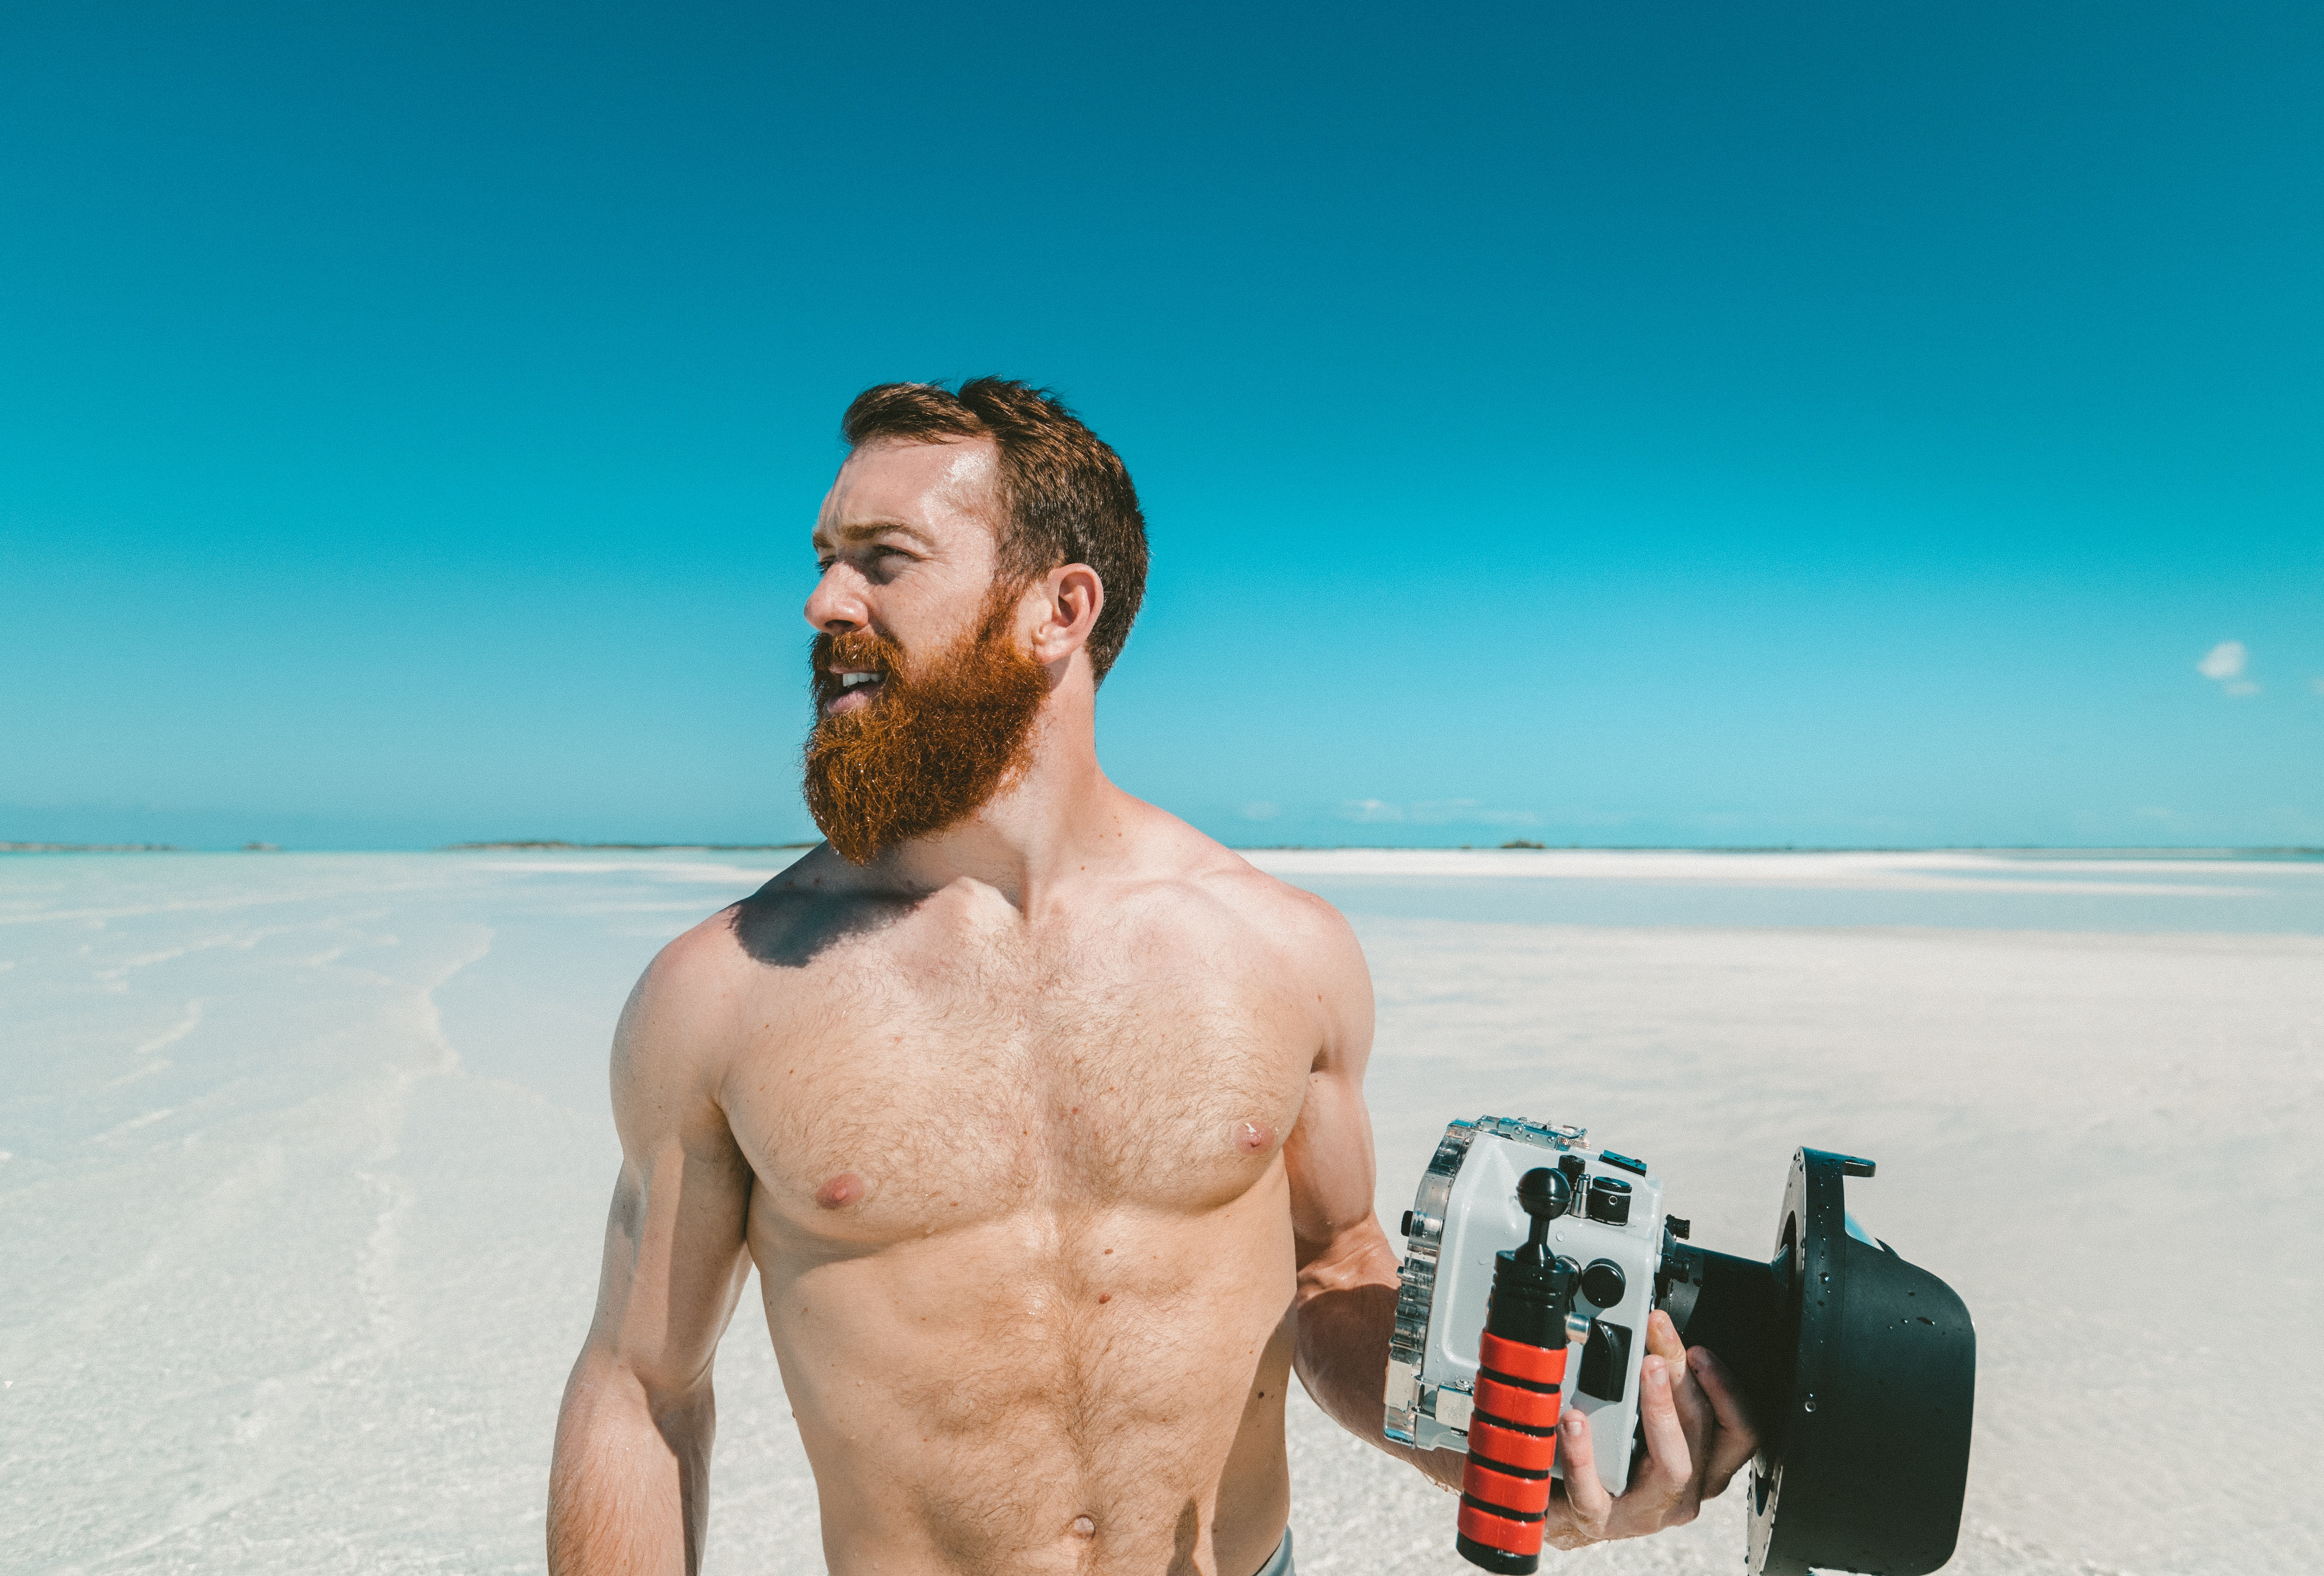 Man with a beard holding an underwater camera at the sand beach